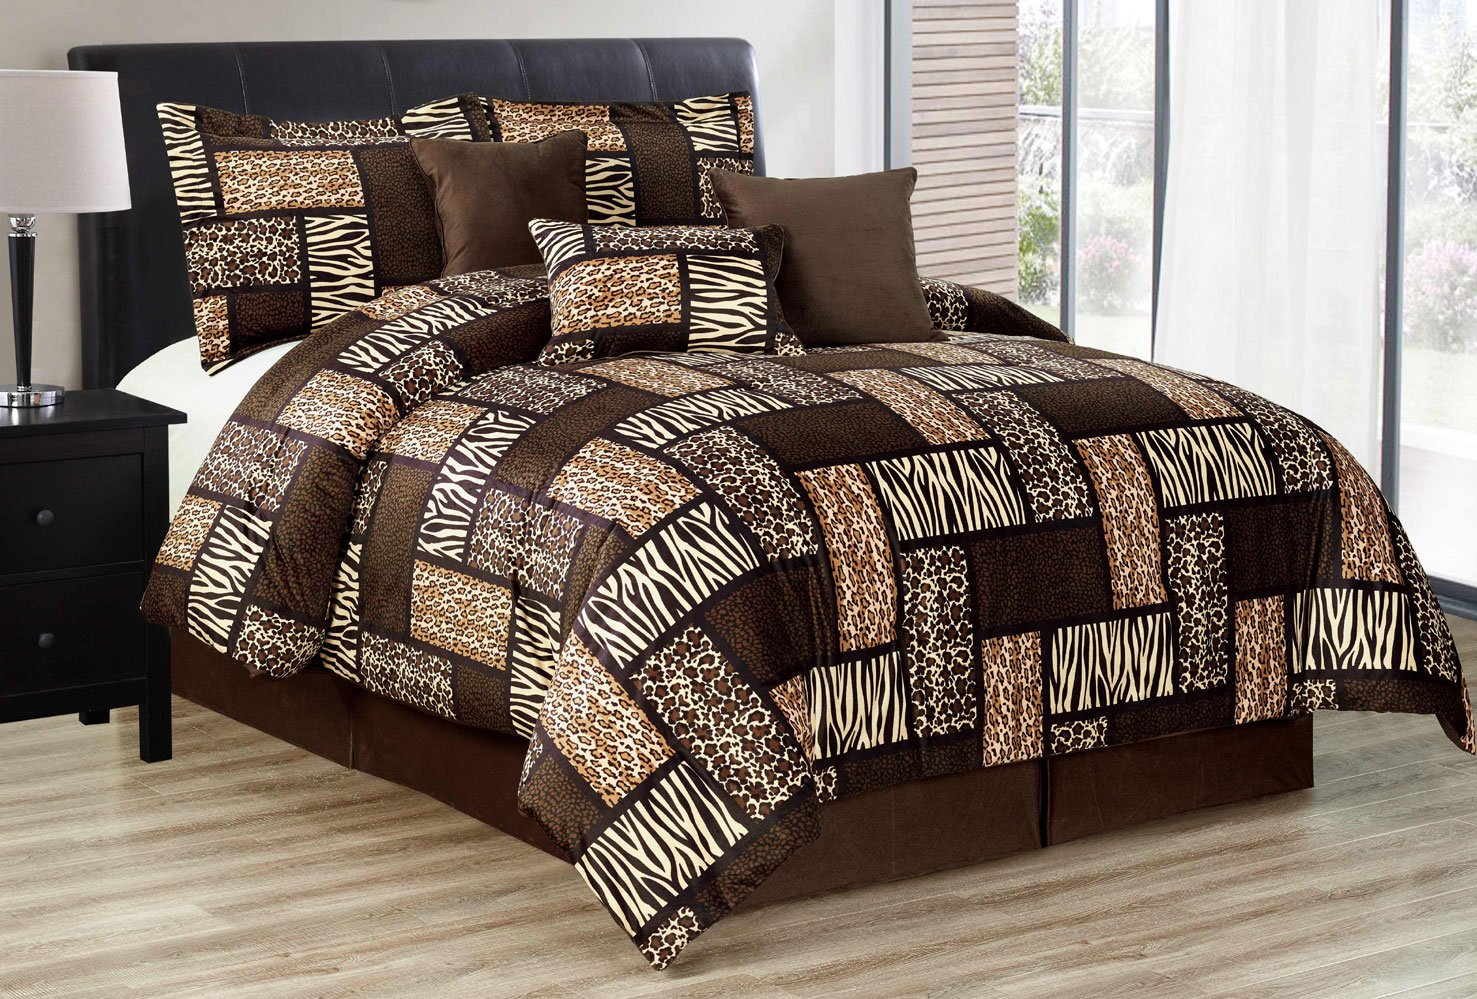 Grand Linen Black/Brown Comforter Set Animal Print Safari Patchwork Microfur Bed in A Bag Twin Size Bedding - Leopard, Zebra, Cheetah Etc.